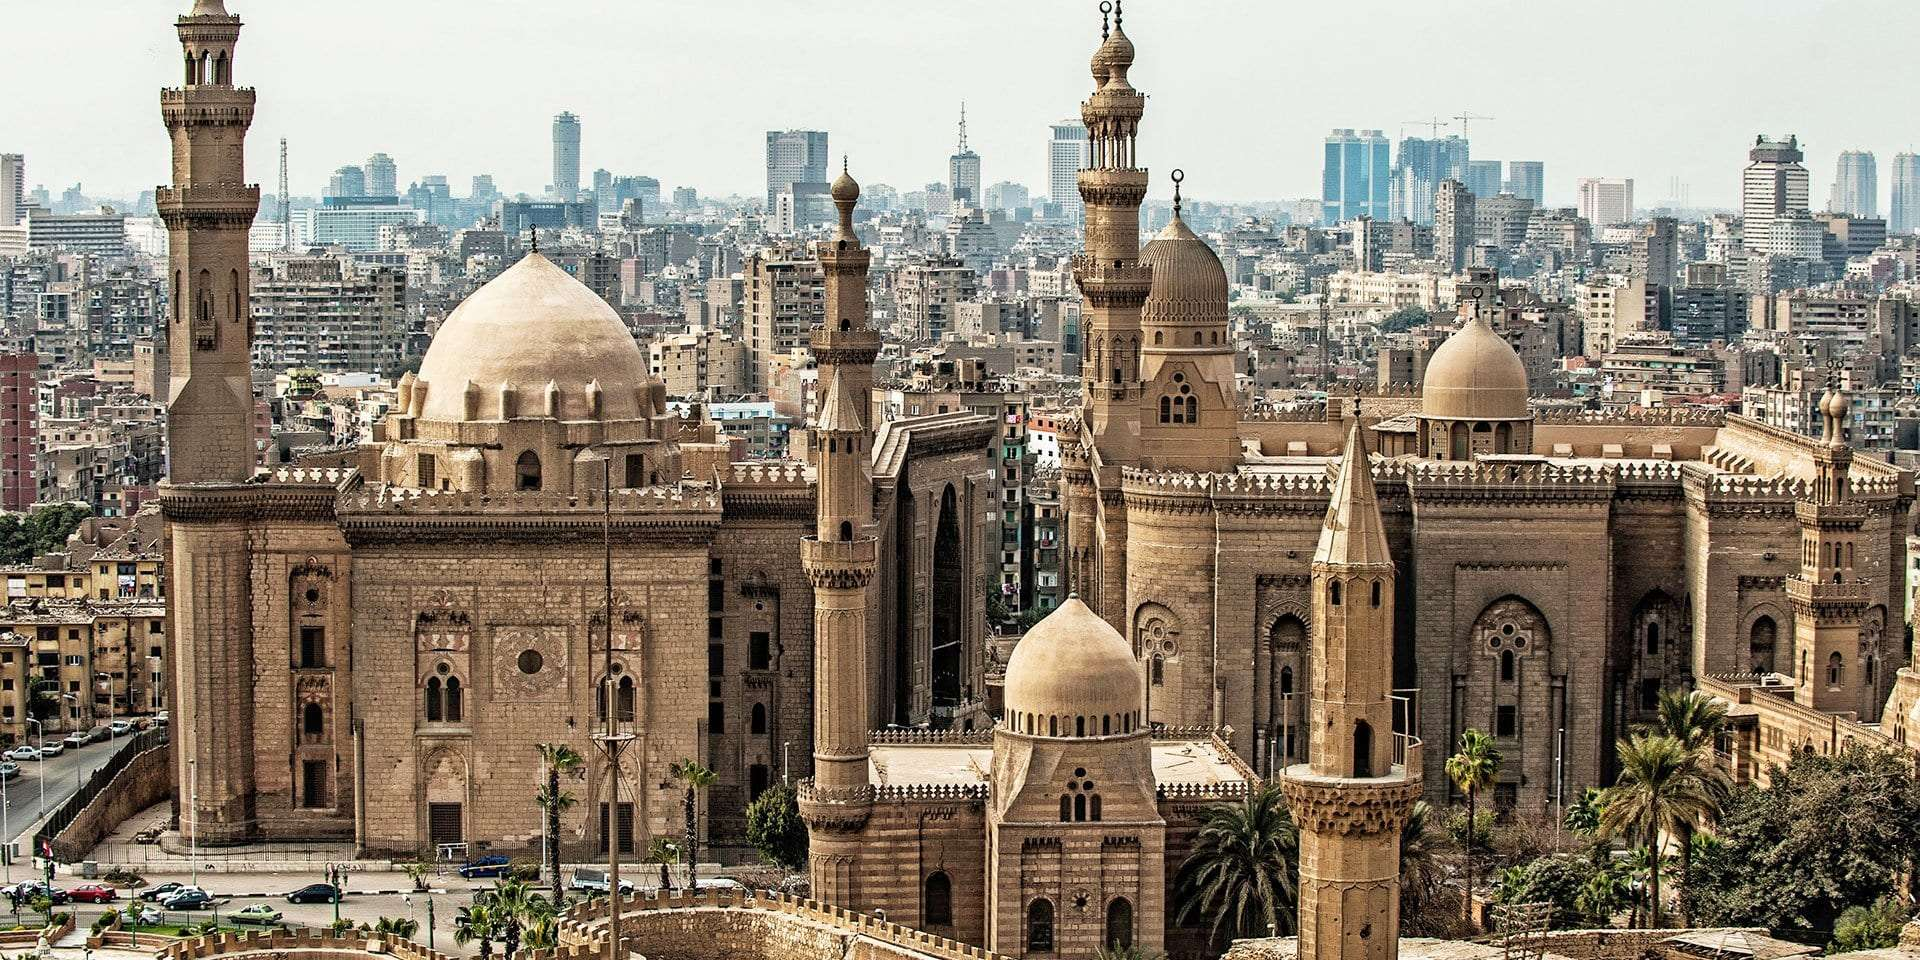 The Great Mosque of Muhammad Ali Pasha is situated in the Citadel of Cairo. (Photo: Getty Images)